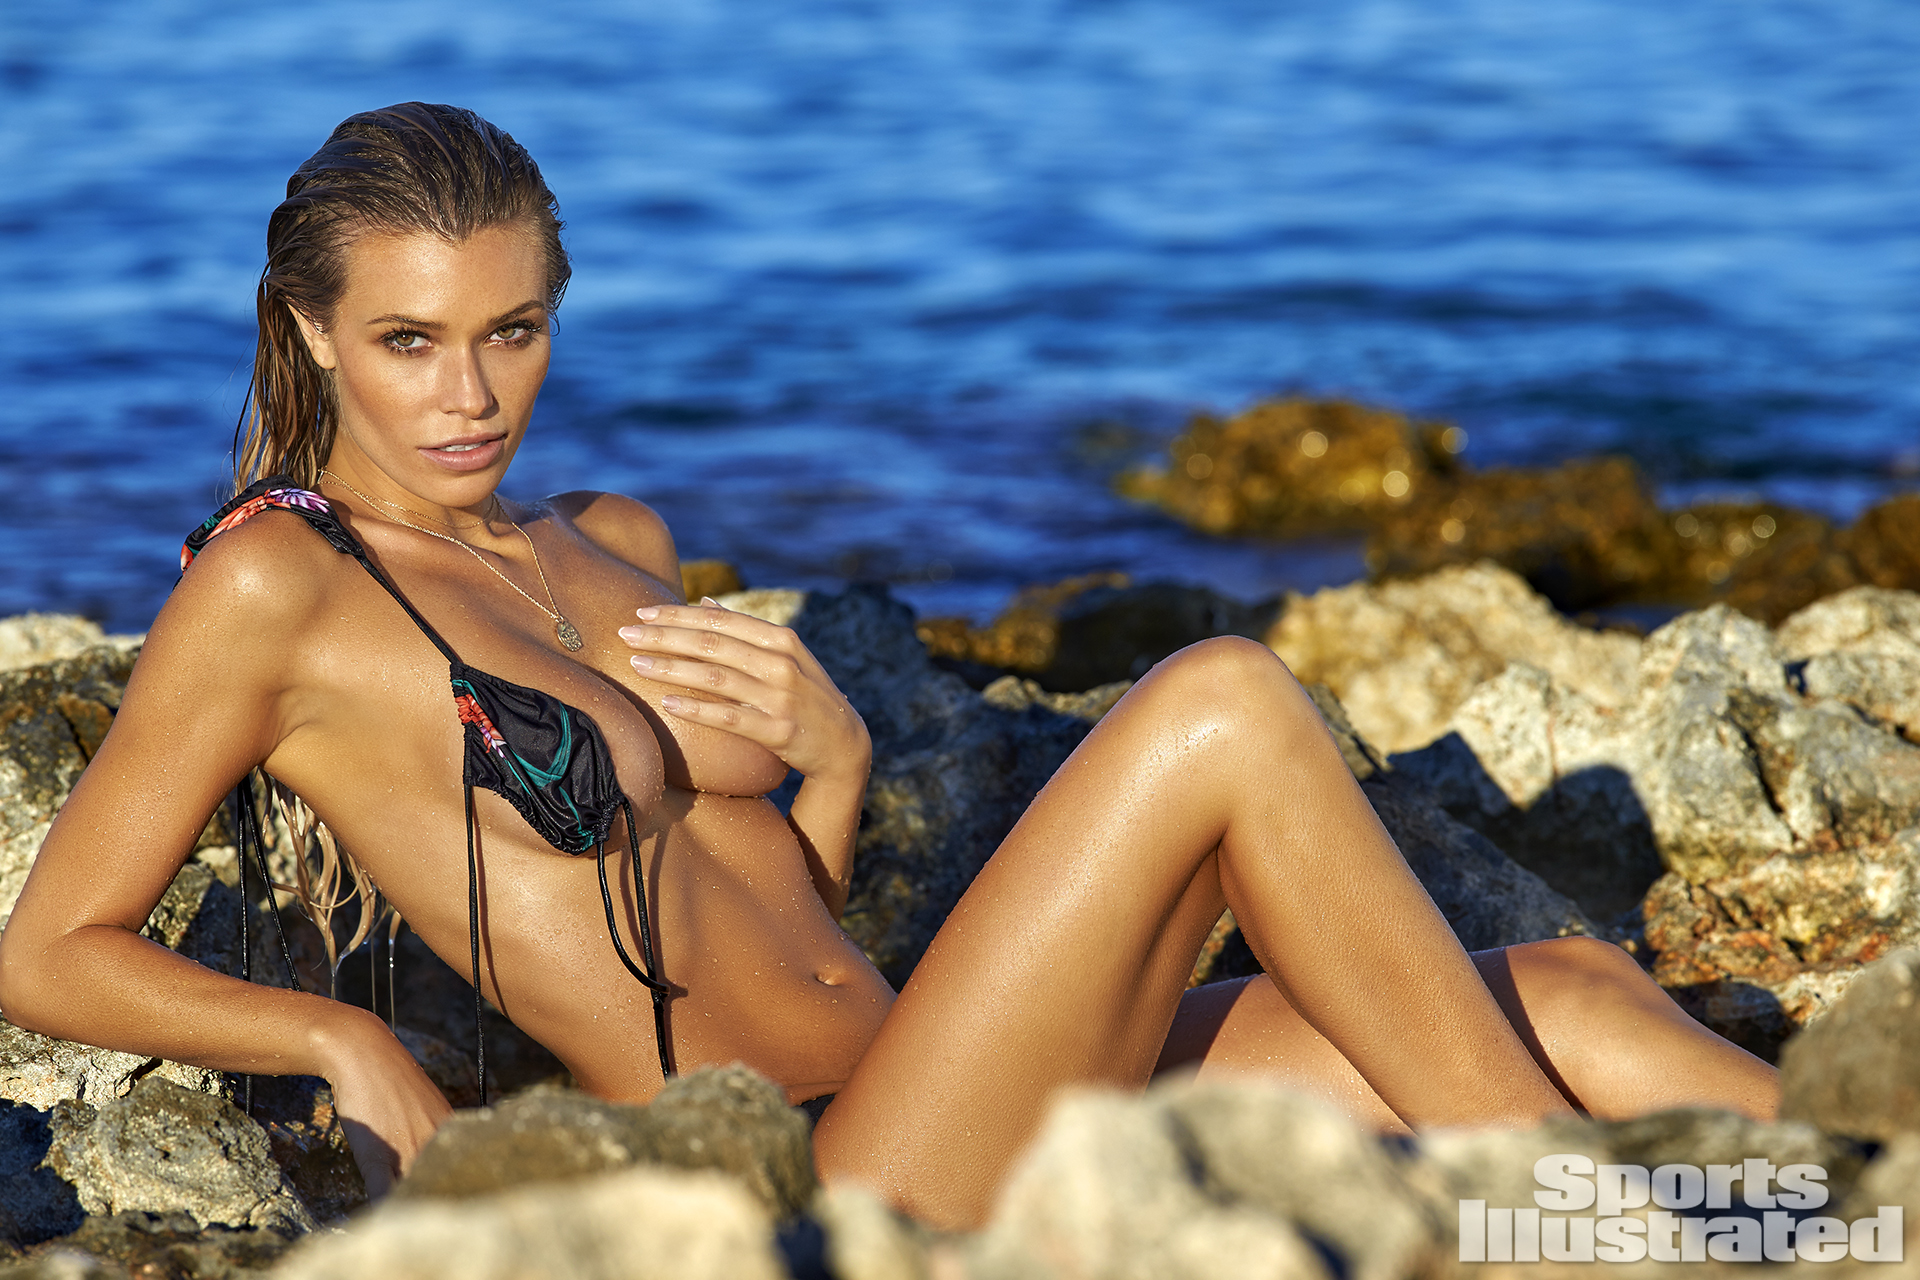 Samantha Hoopes was photographed by Ben Watts in Malta. Swimsuit by INDAH.